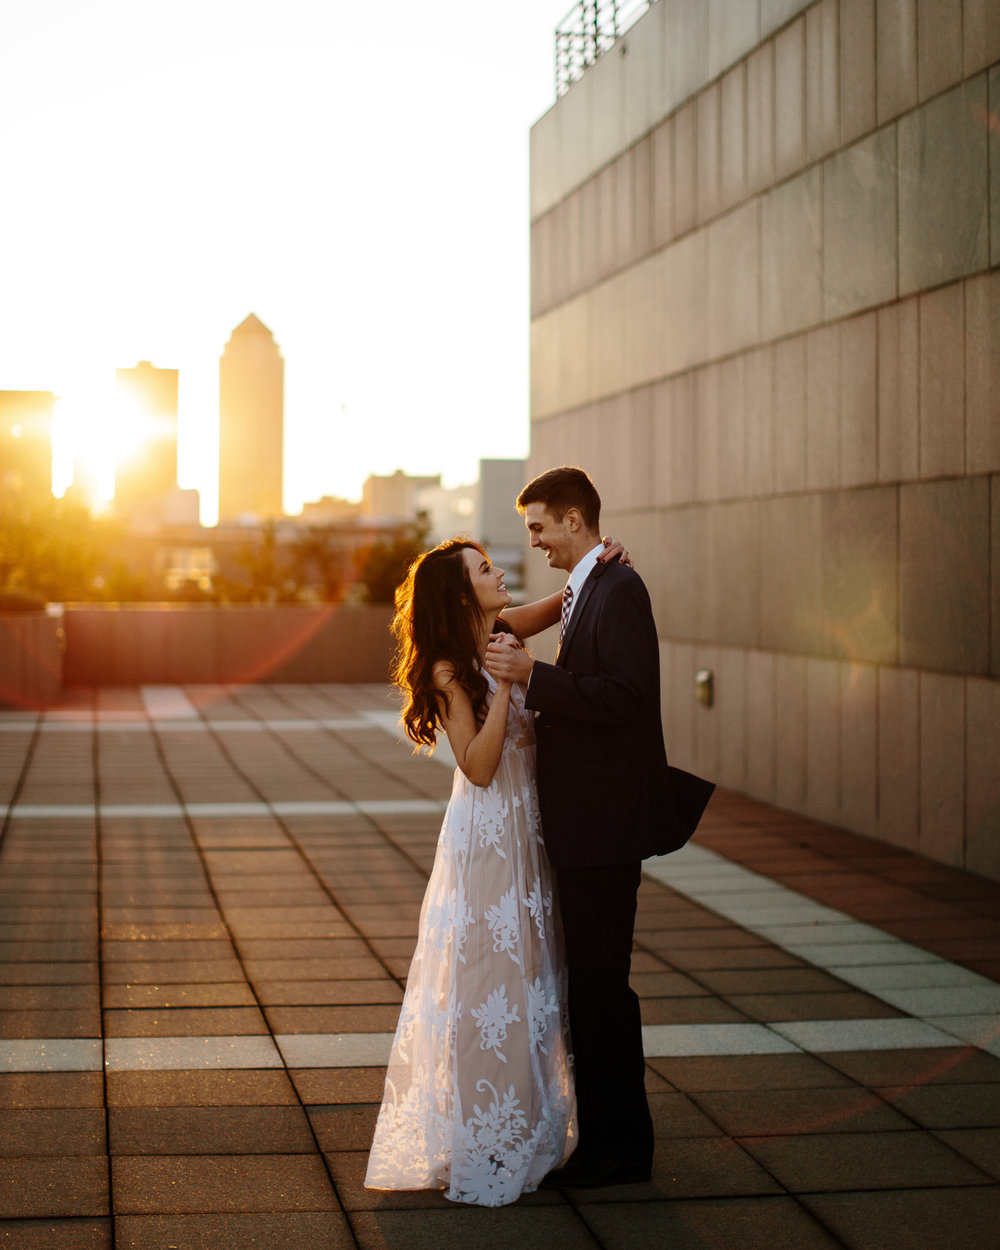 wedding-elopement-adventerous-romantic-timeless-des-moines-siouxfalls-photography-27.jpg